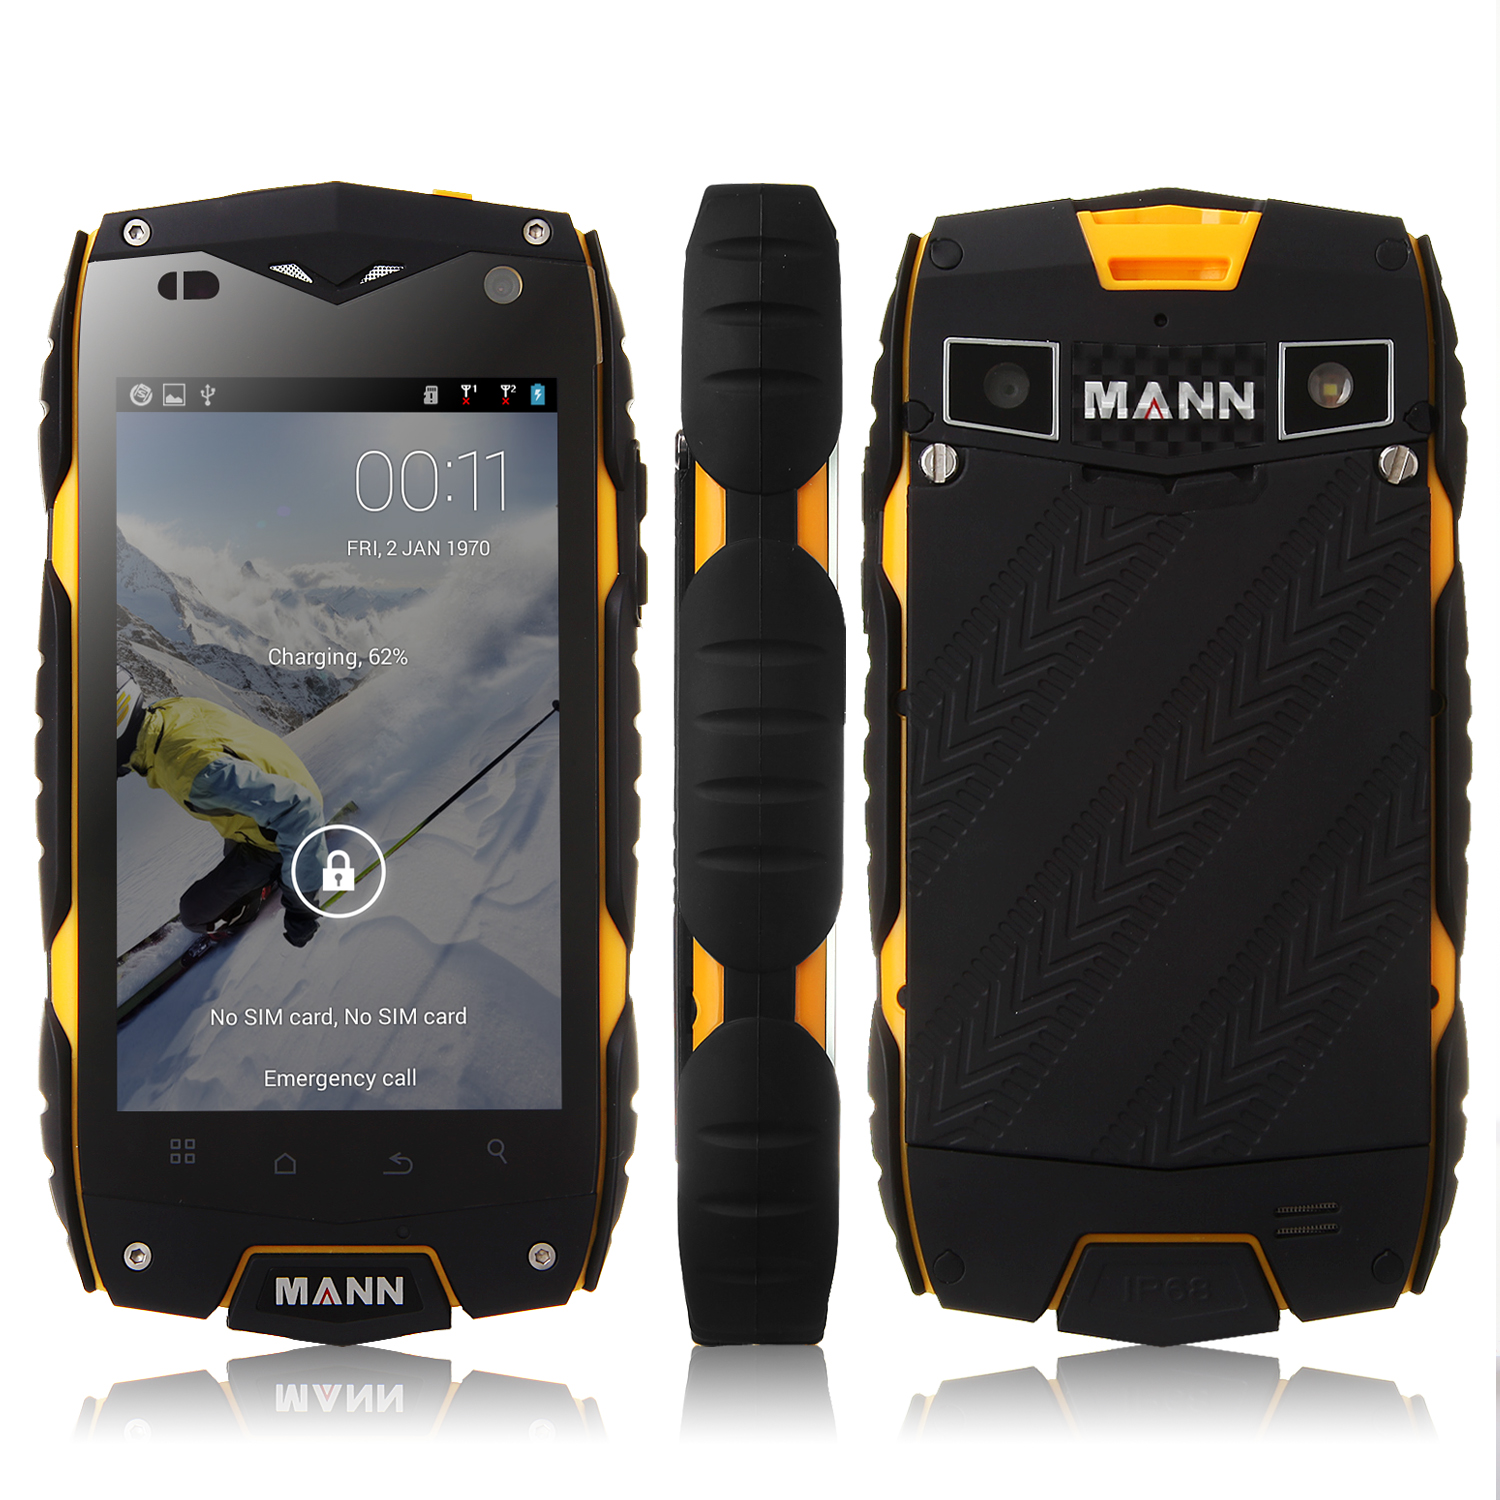 MANN ZUG 3 Smartphone IP68 Android 4.3 Qualcomm MSM8212 Quad Core 4.0 Inch 3G GPS